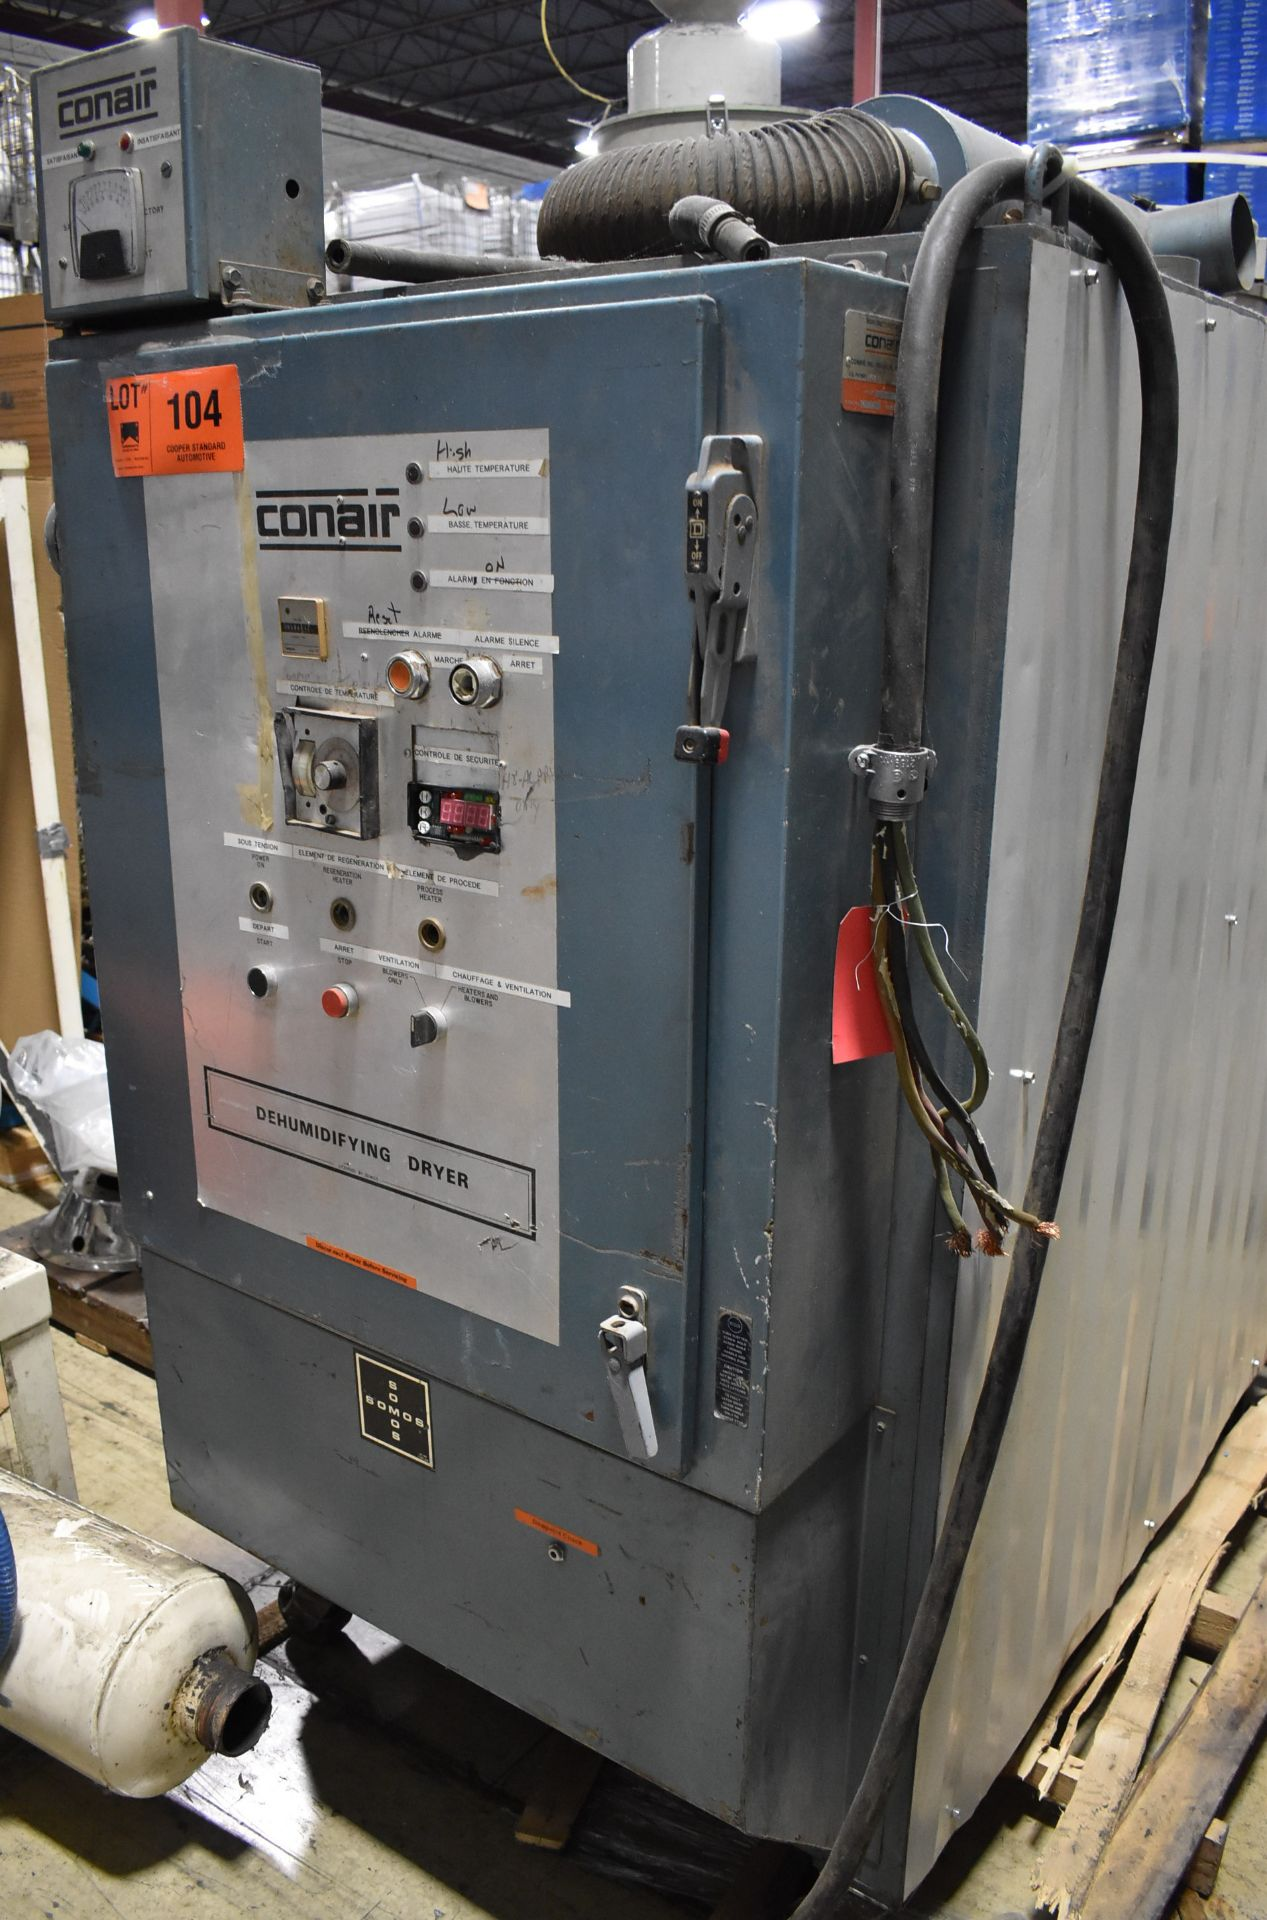 CONAIR D600H831 DEHUMIDIFYING DRYER, S/N: 4D1872 (LOCATED IN BRAMPTON, ON) [RIGGING FEES FOR LOT #